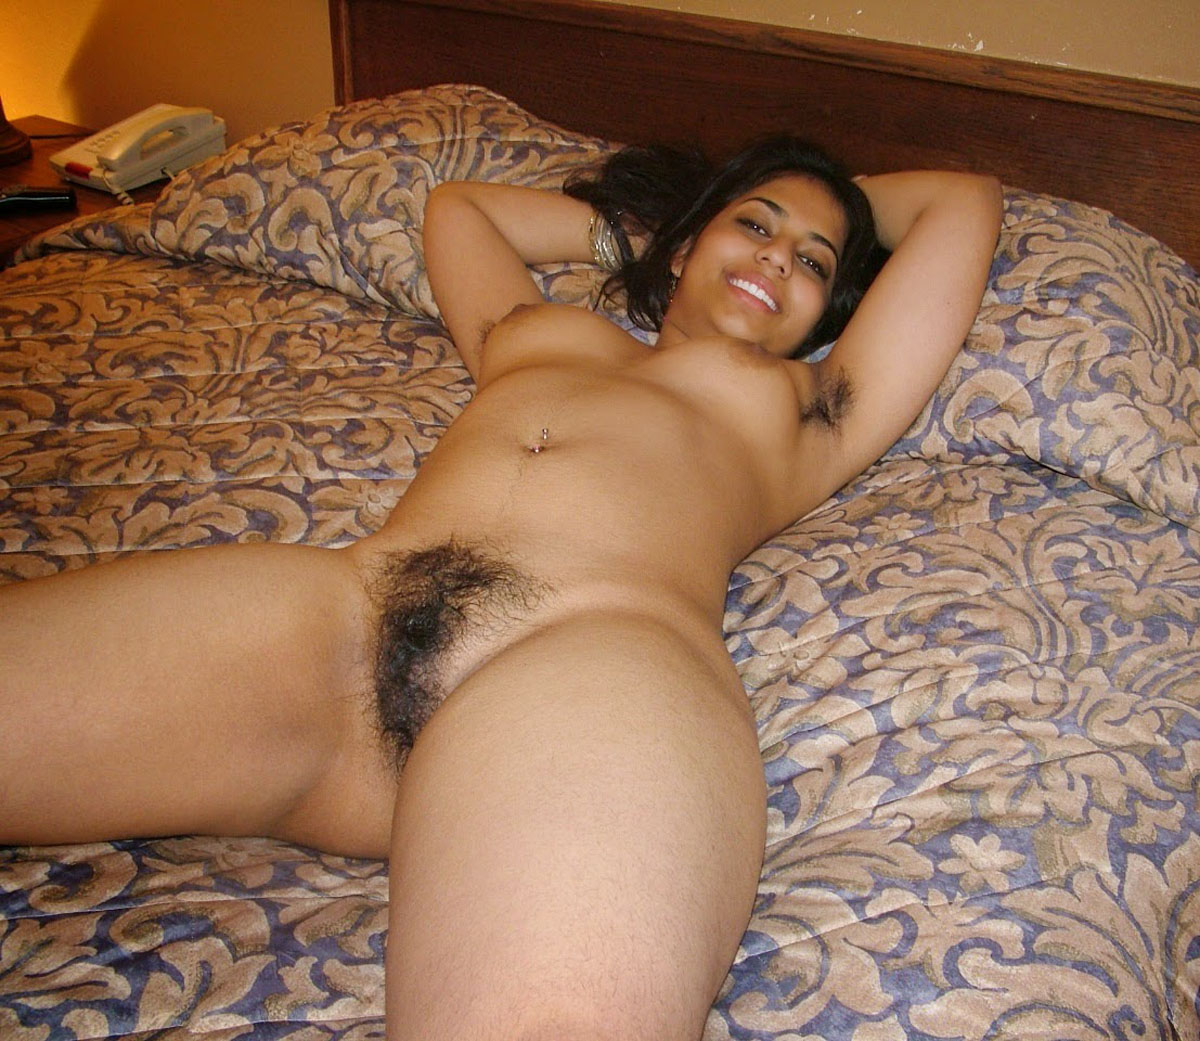 Desi girl hairy armpits simply matchless